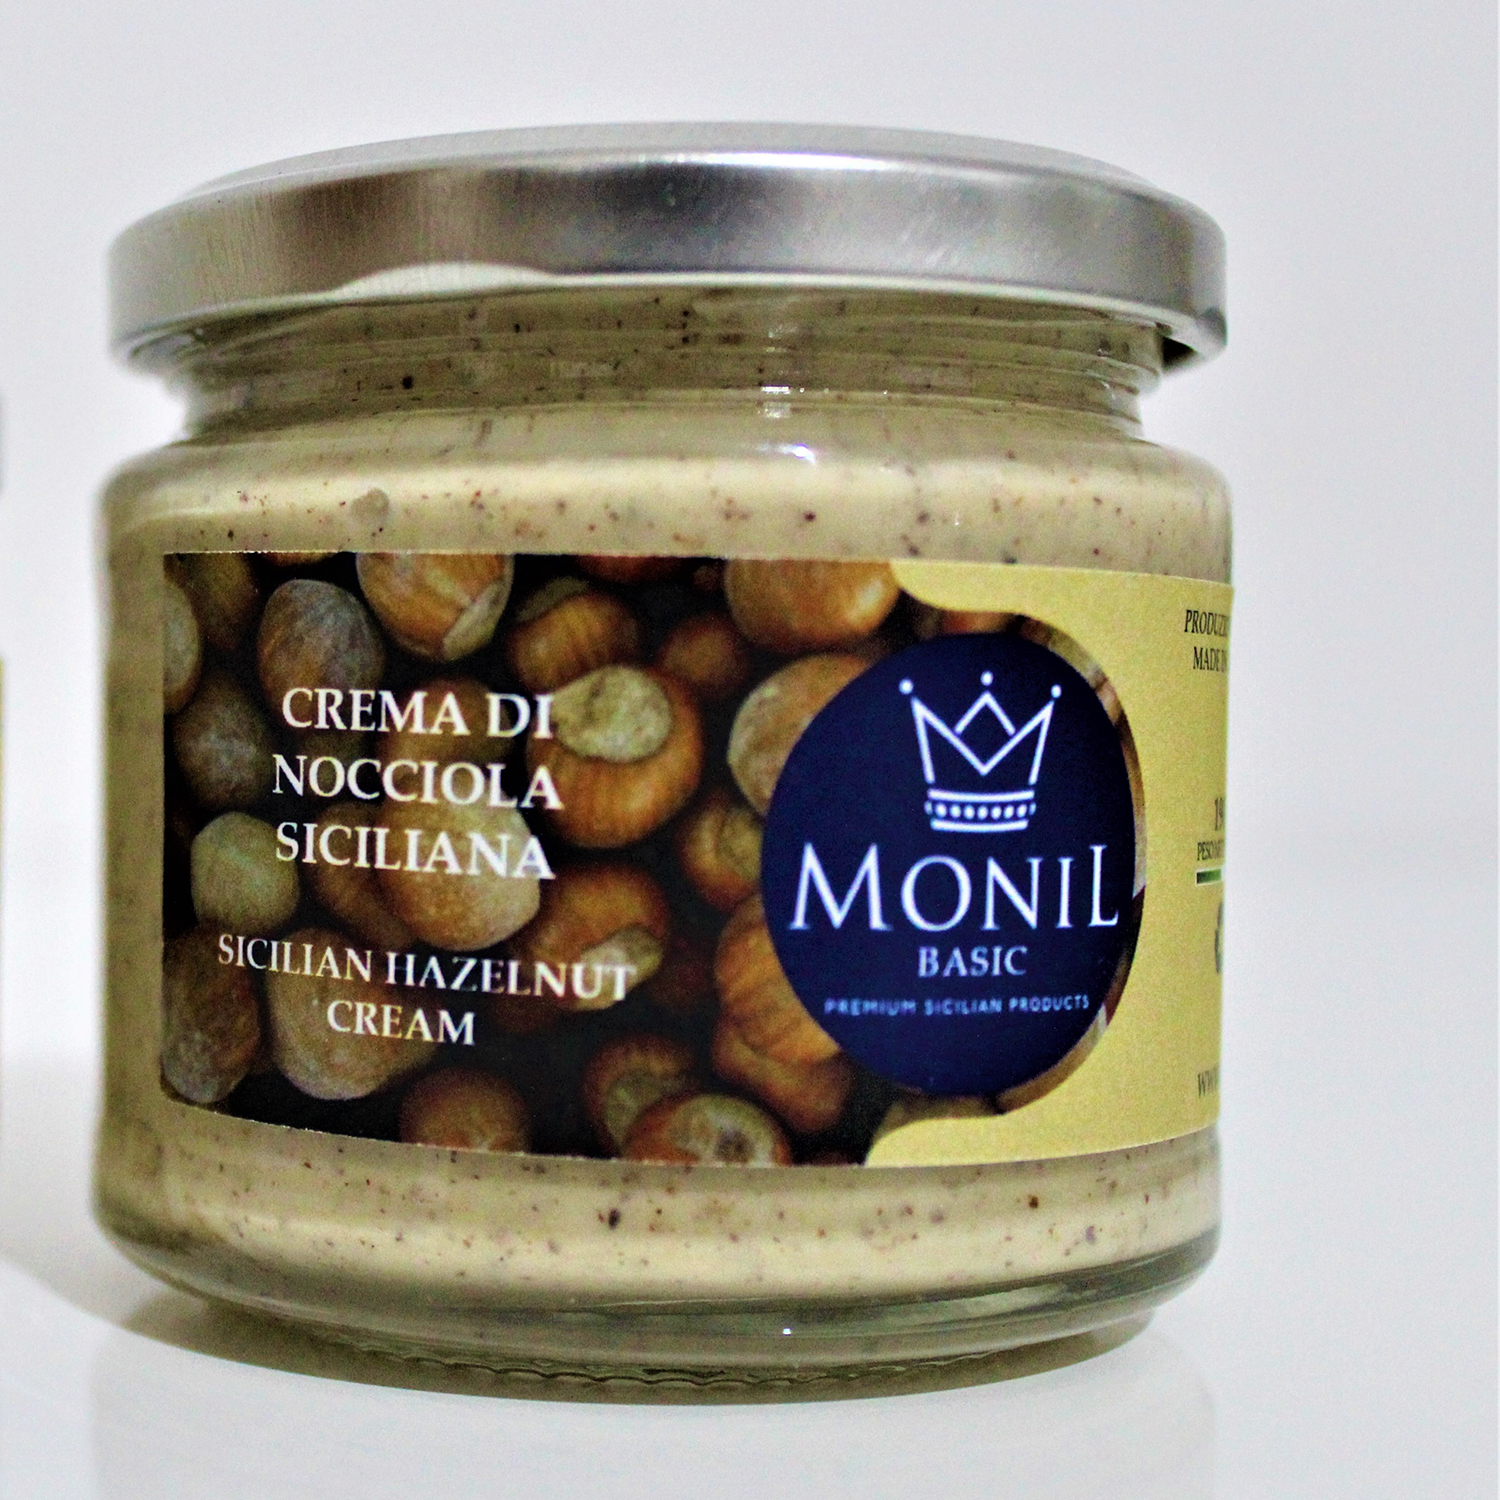 Sicilian hazelnut cream MONIL Basic, Italy, Italian nuts, condiment, Sweet Spread, sauce